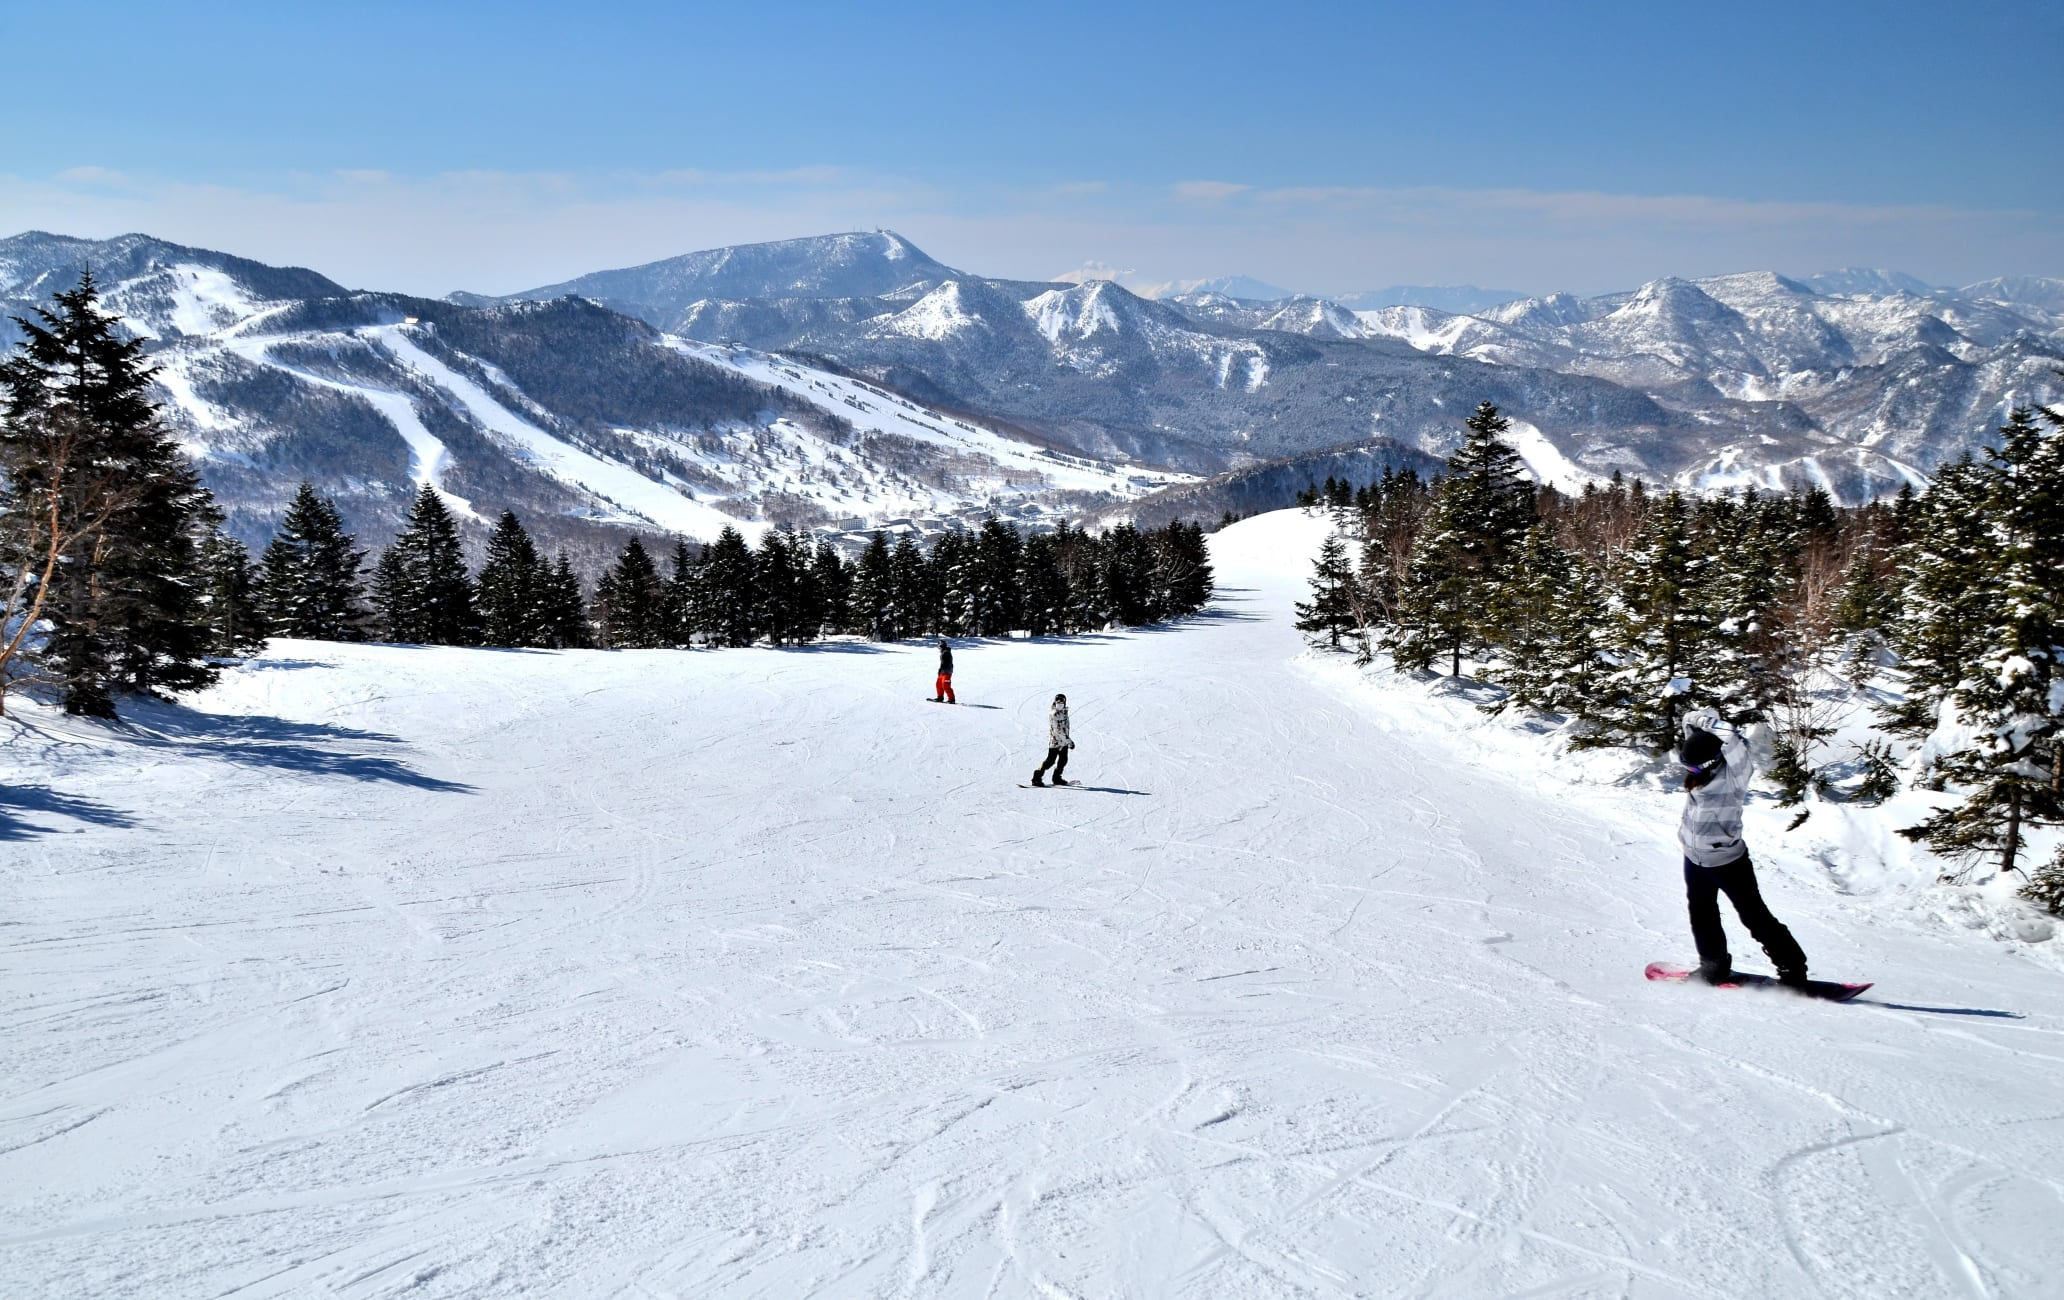 shiga-kogen highlands area